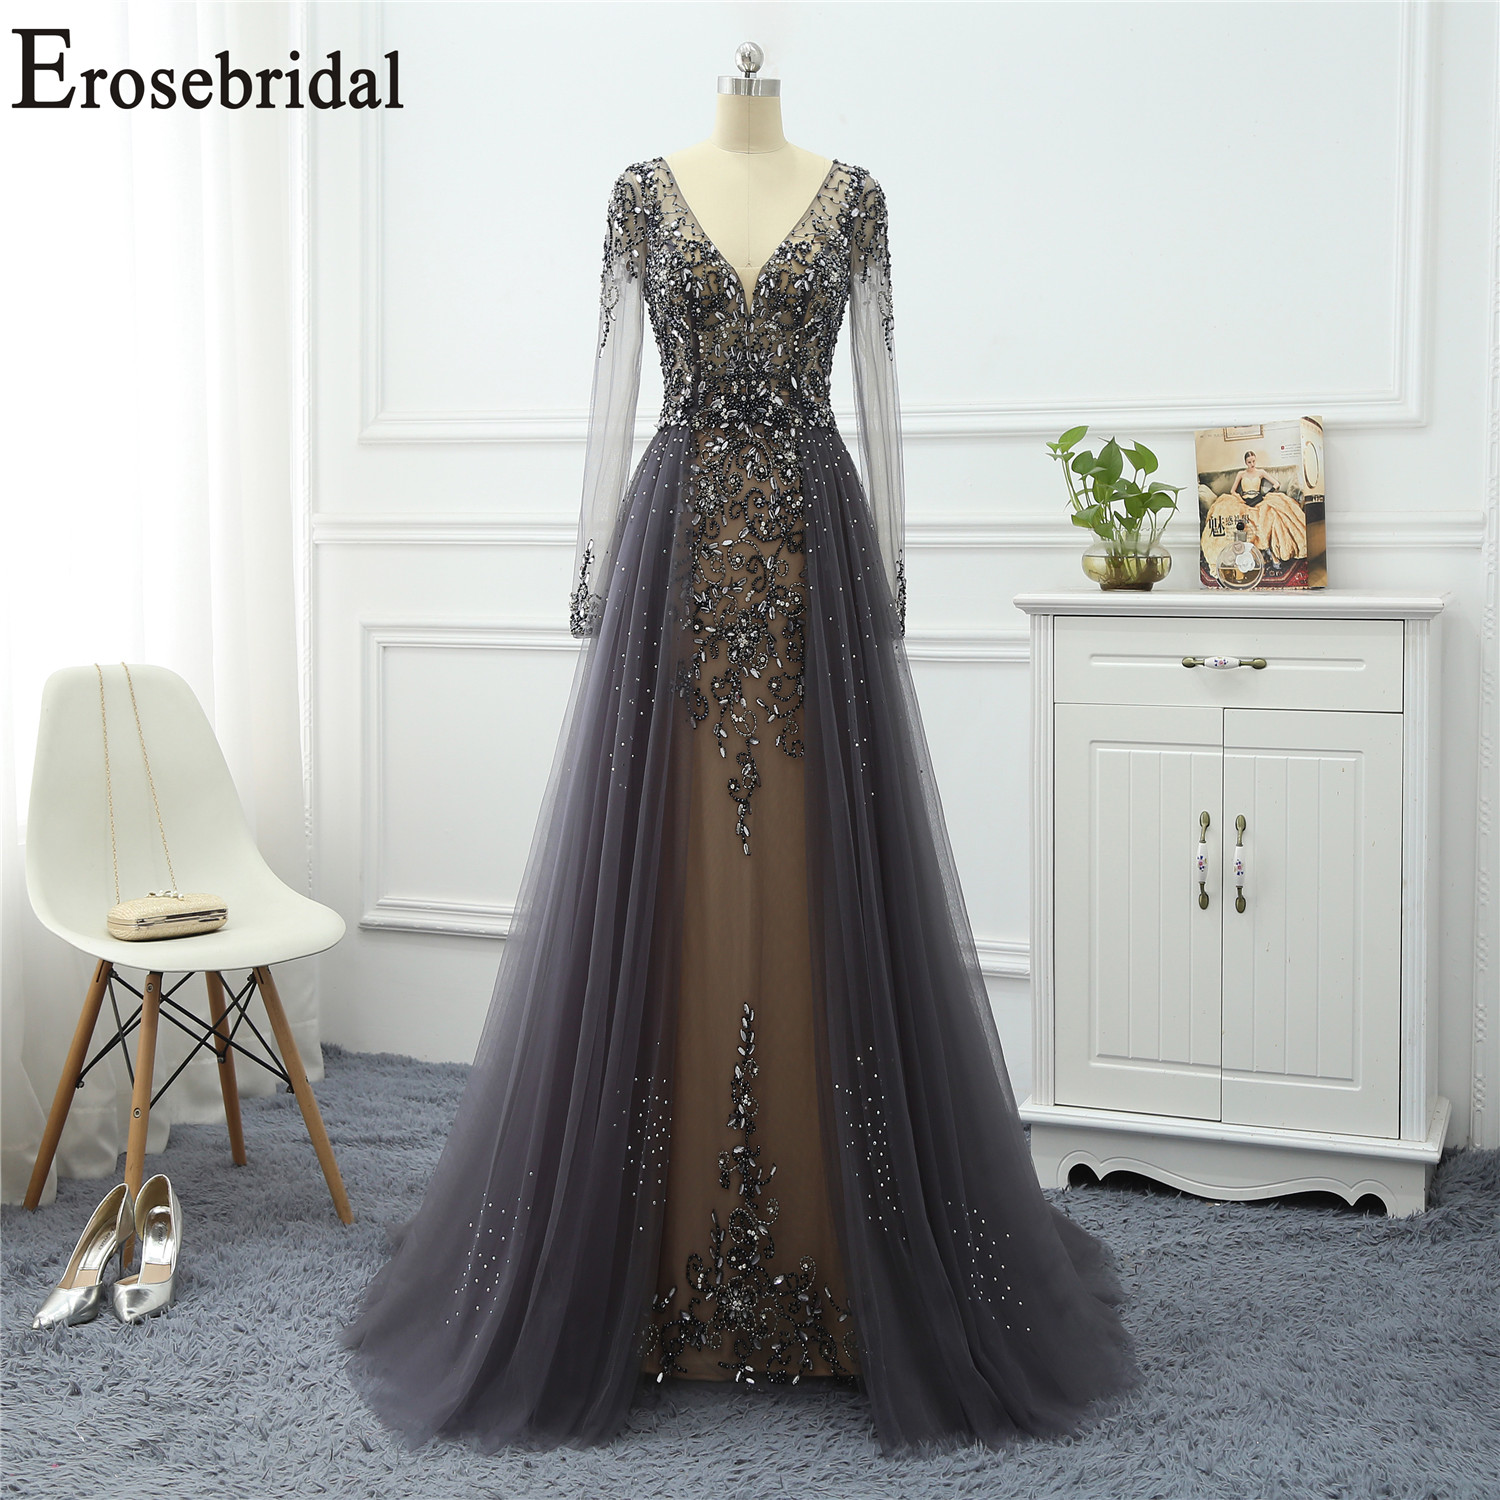 Erosebridal Long Sleeve Occasion Dresses For Women Evening Dress Long Formal Dresses Evening Gowns Tulle Fabric With Beaded